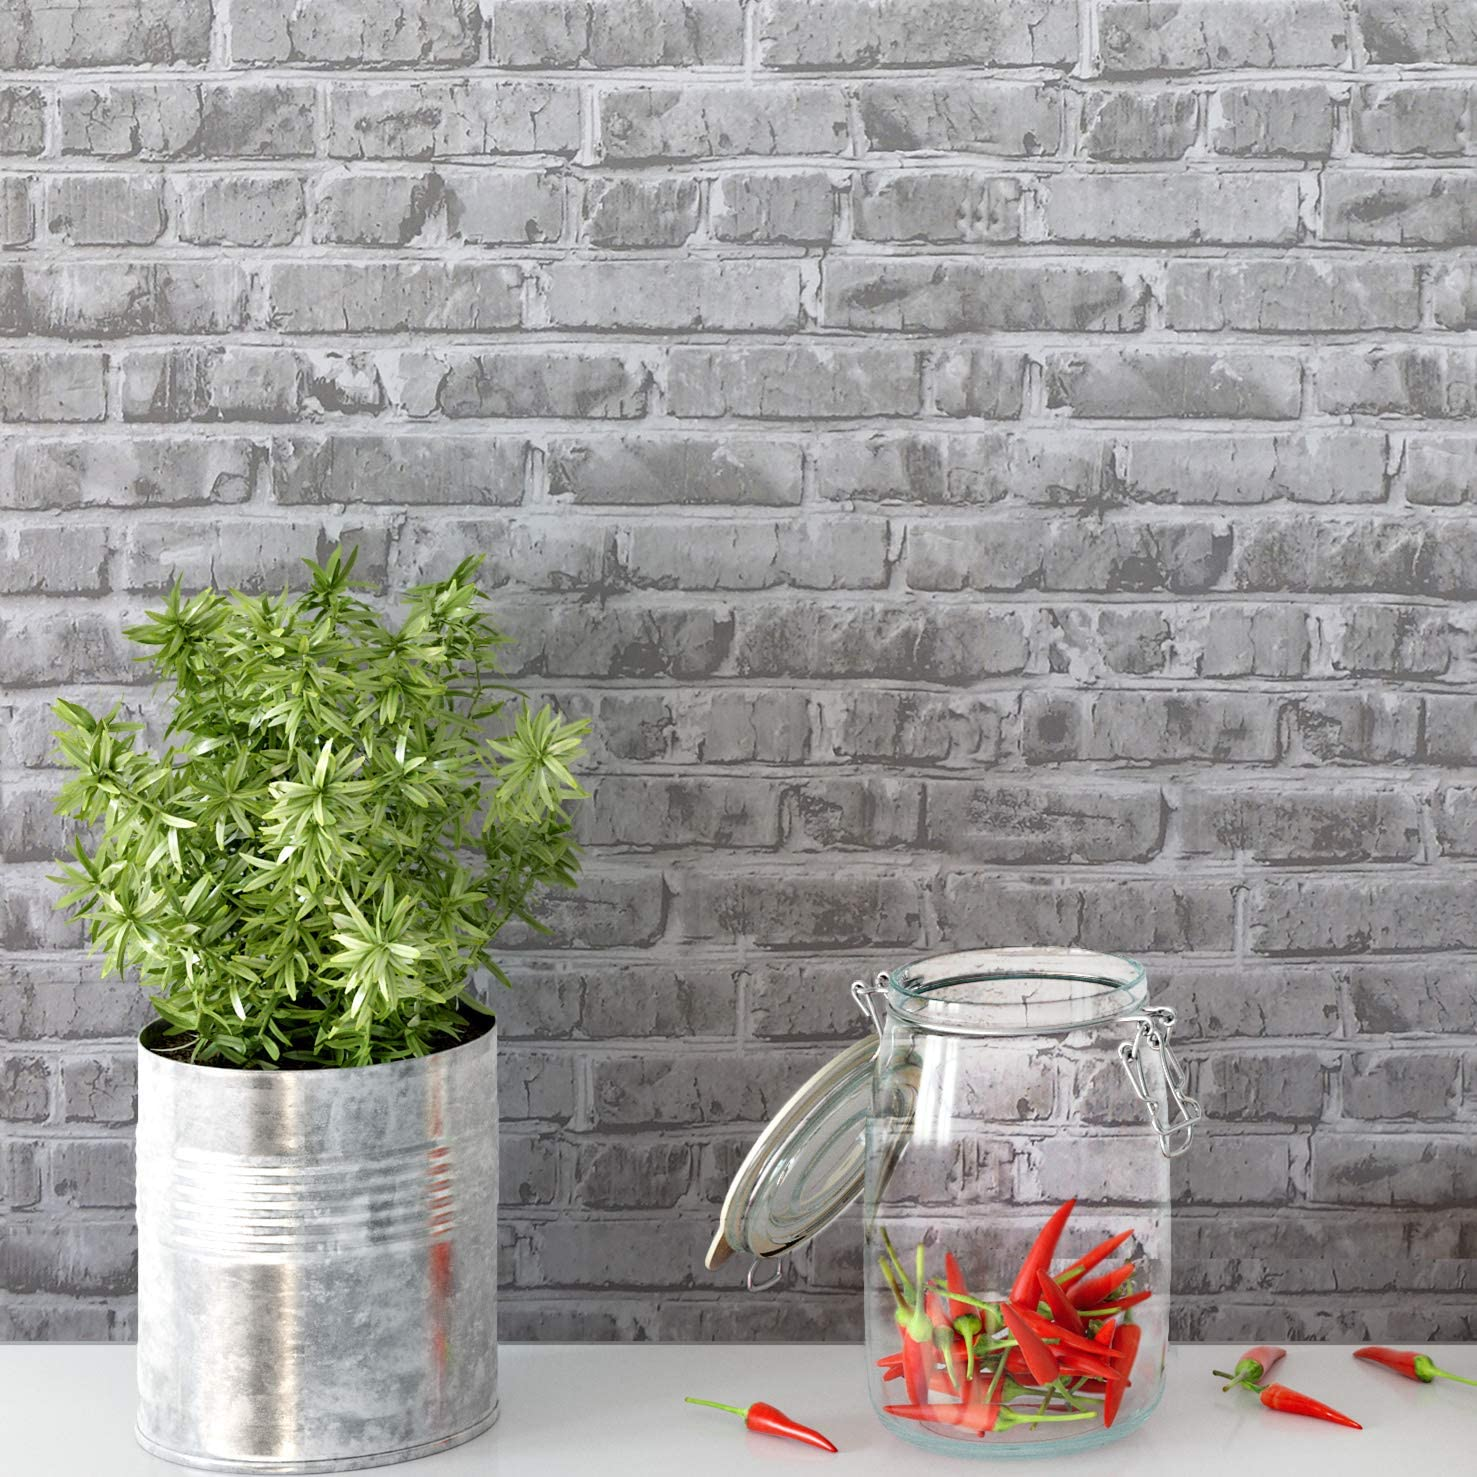 """Timeet Brick Peel and Stick Wallpaper Self-Adhesive 17.7"""" x 78.7"""" Brick Textured Wallpaper Removable Film for Room Decor,Gray"""